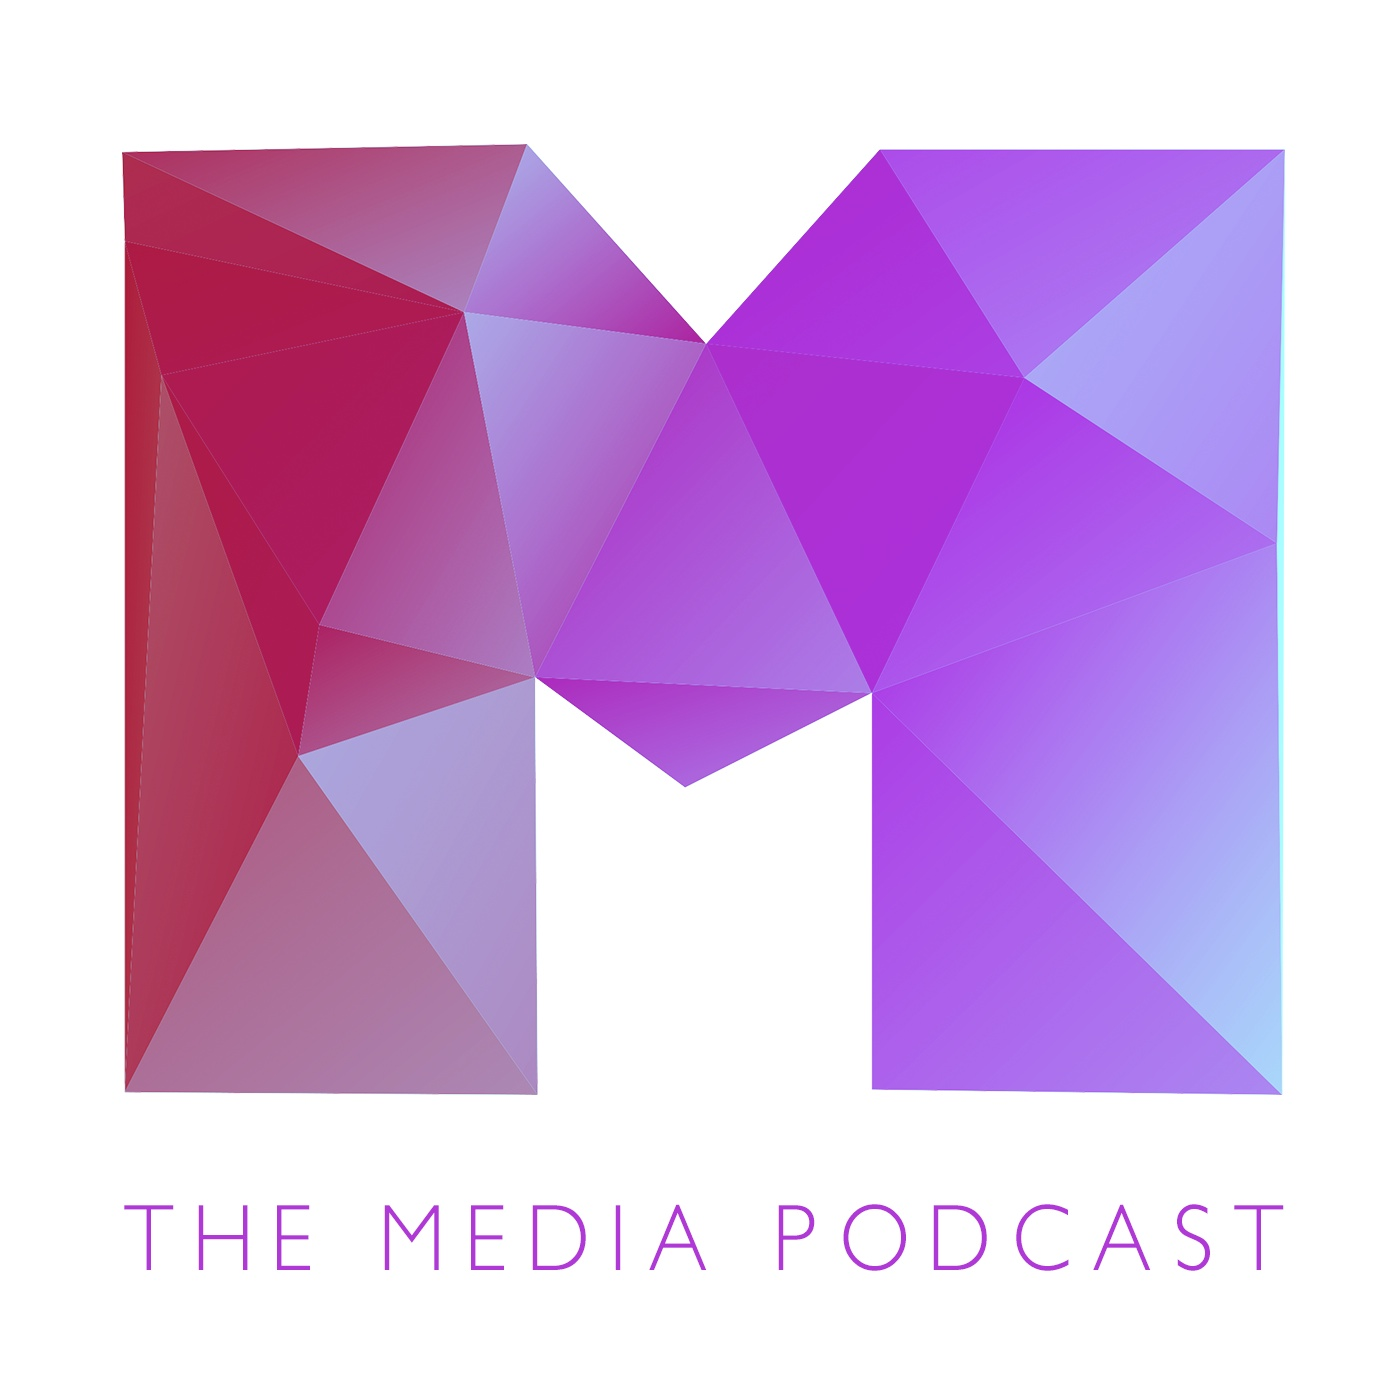 The Media Podcast with Olly Mann